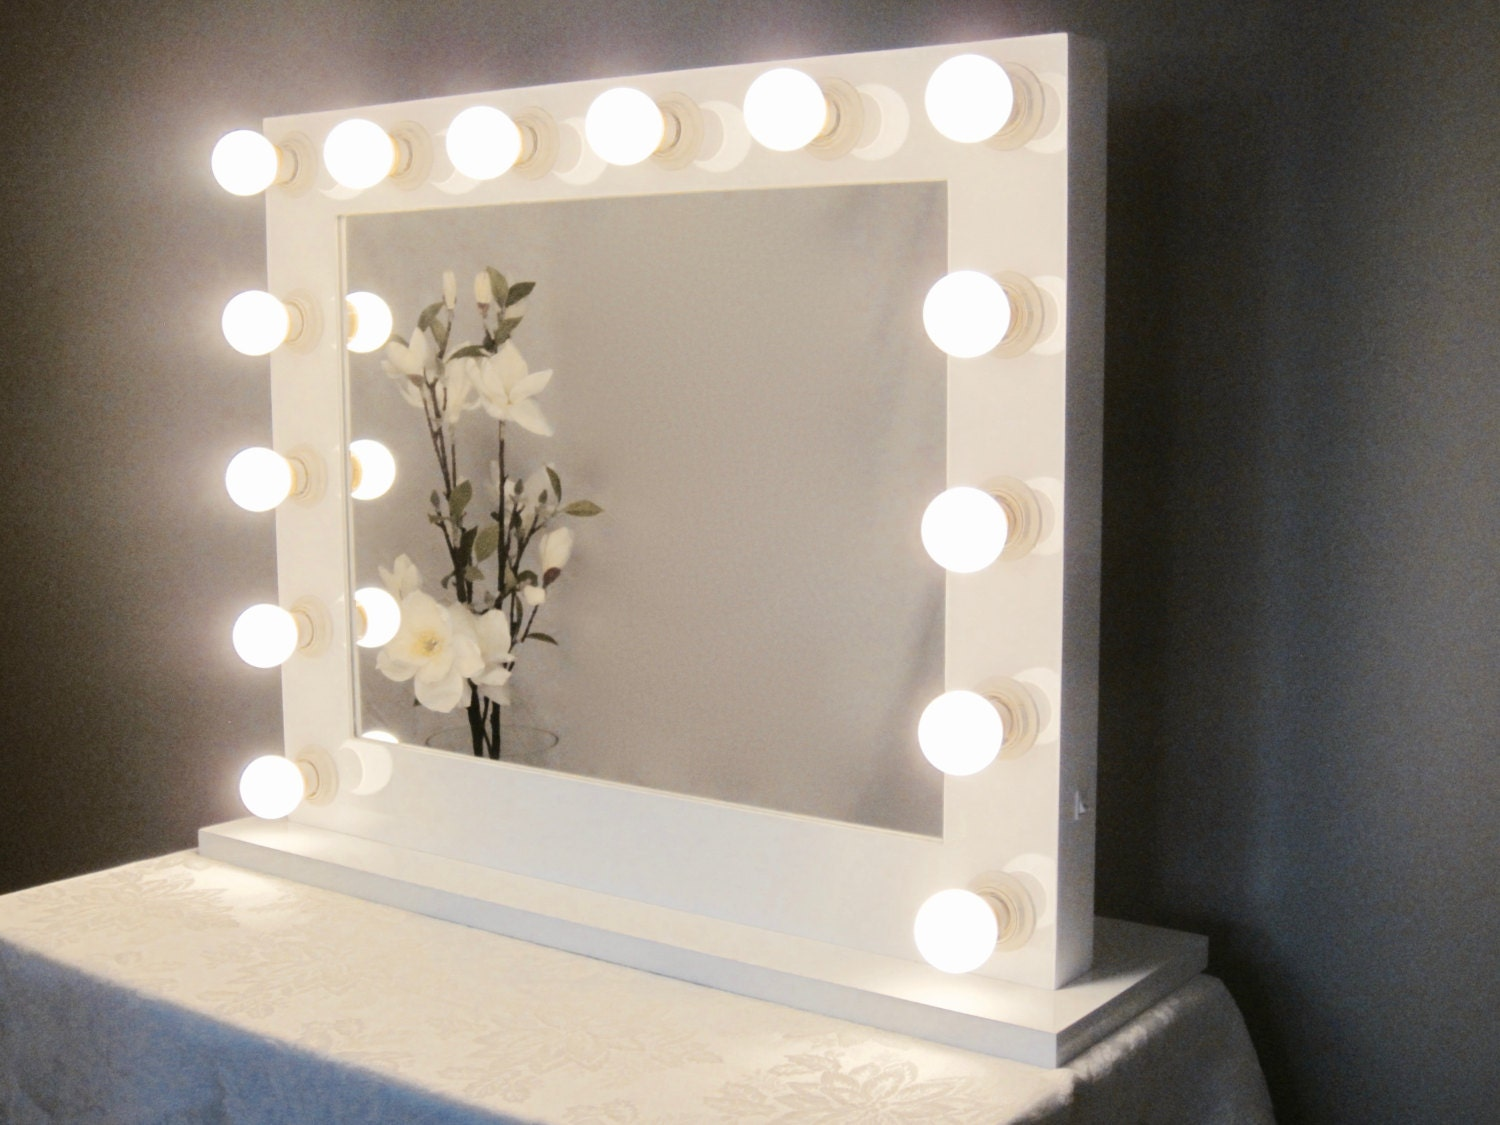 Lighted Vanity Mirrors Wall Mounted Mam94836 48 Quot WidexOPENING NIGHT Large Rectangular Wall ...